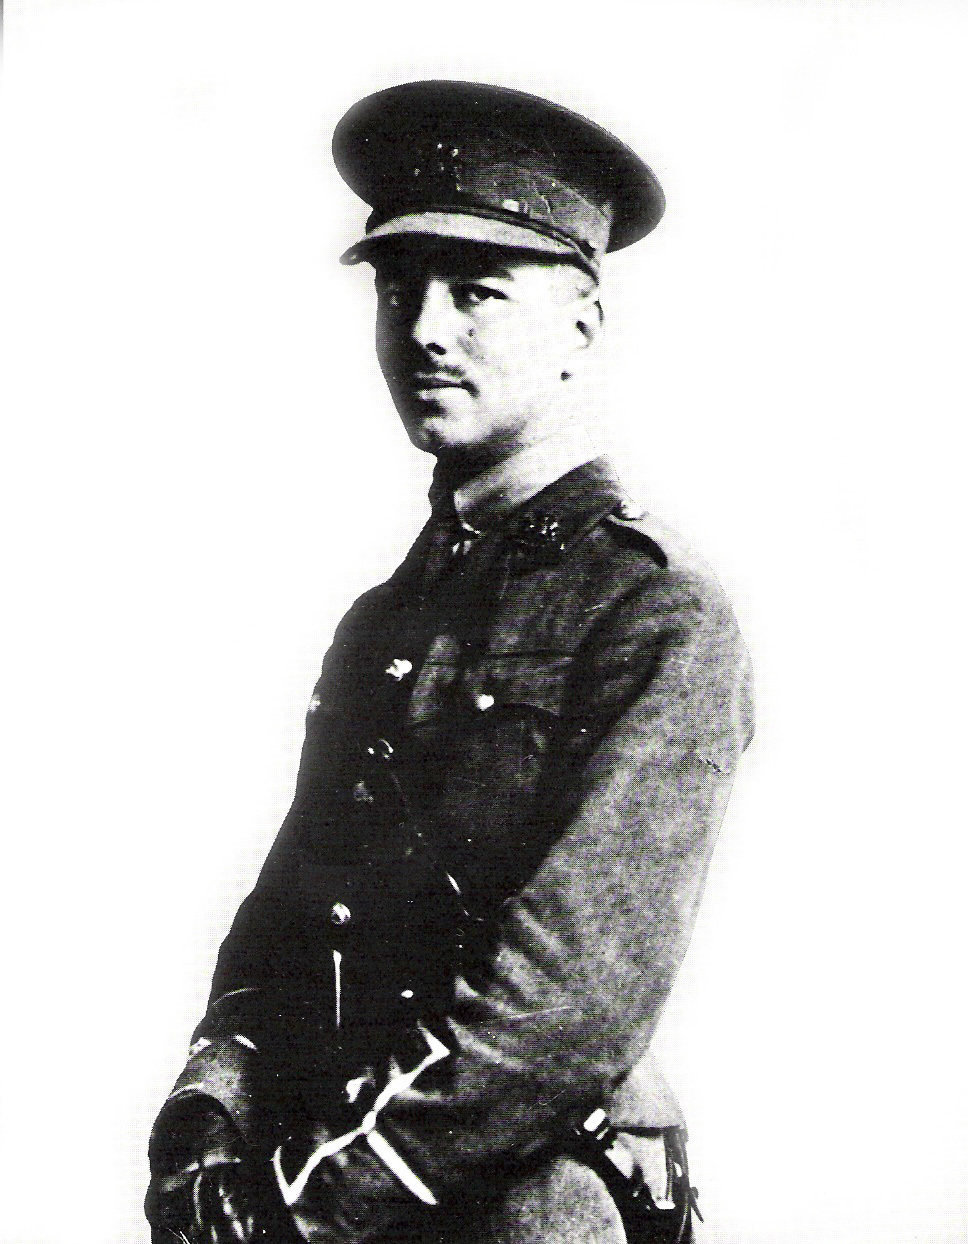 the unreturning by wilfred owen Other titles discussing owen's work include dominic hibberd's owen the poet, dennis welland's wilfred owen : a critical study, douglas kerr's wilfred owen's voices and the recently published wilfred owen: selected poems and letters.